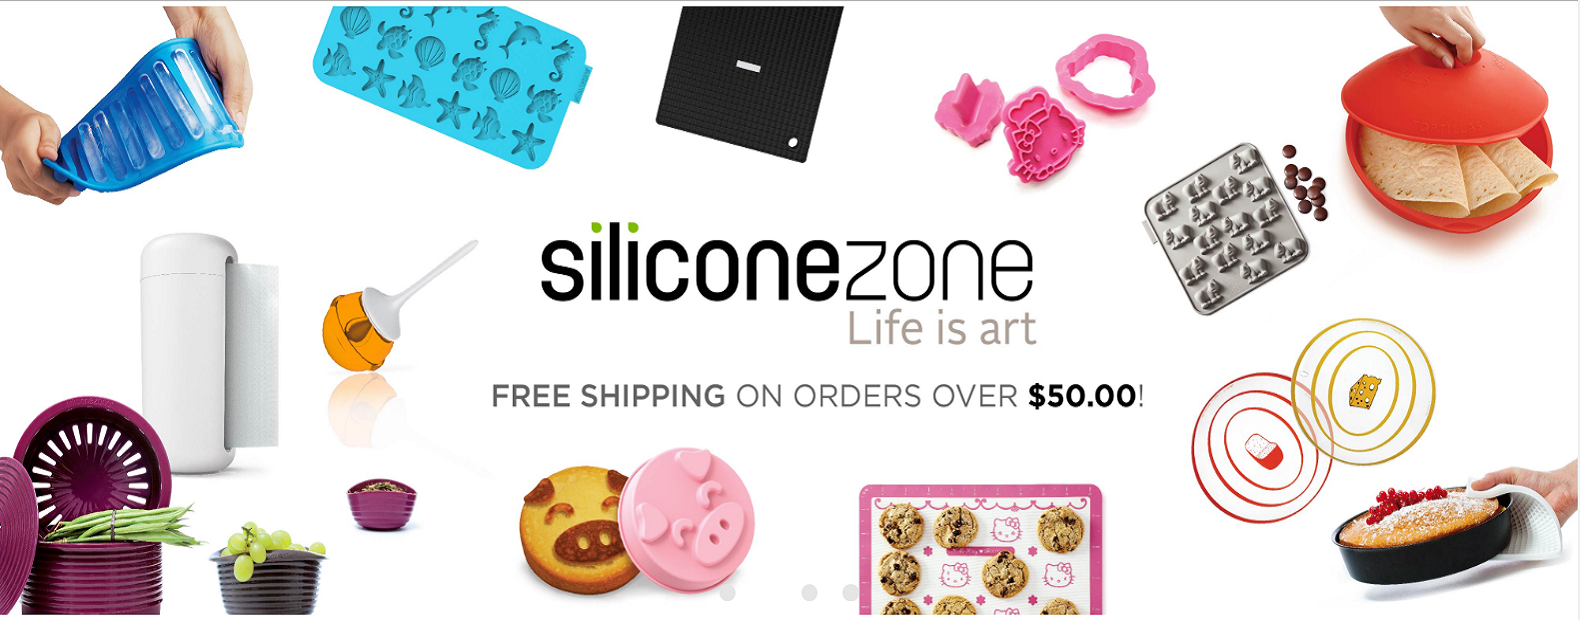 Silicone Zone website screenshot